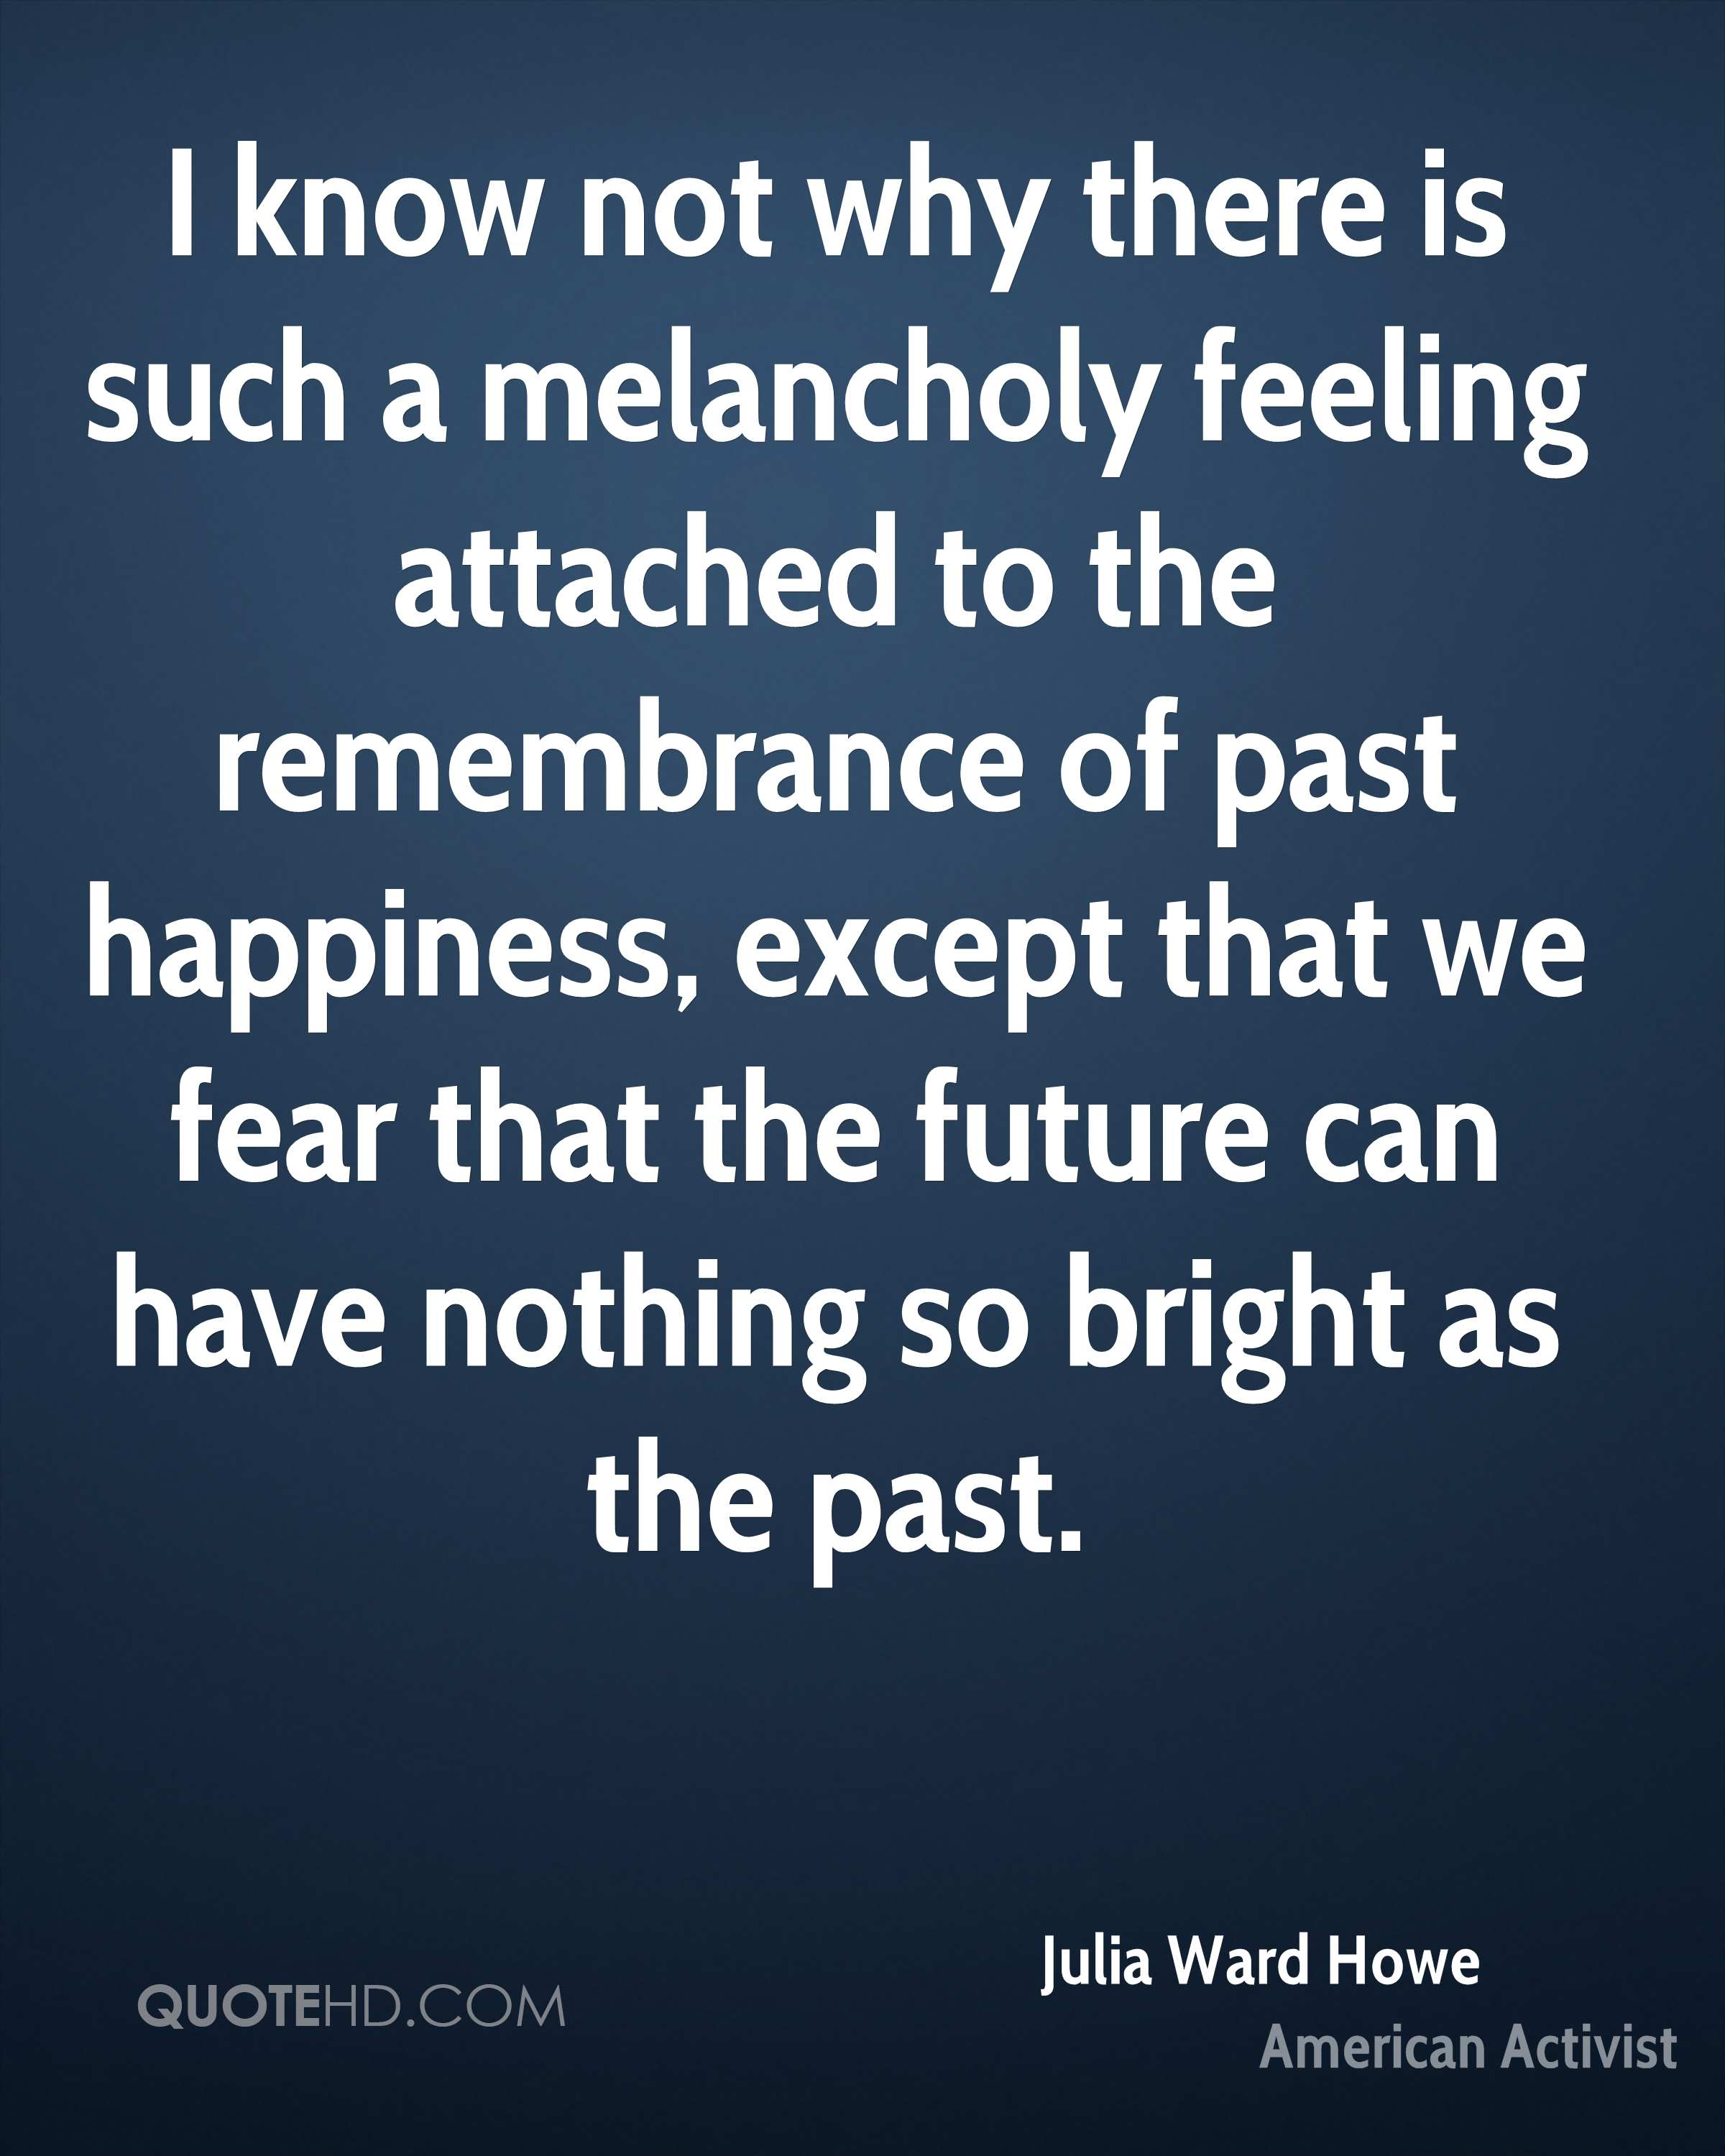 I know not why there is such a melancholy feeling attached to the remembrance of past happiness, except that we fear that the future can have nothing so bright as the past.